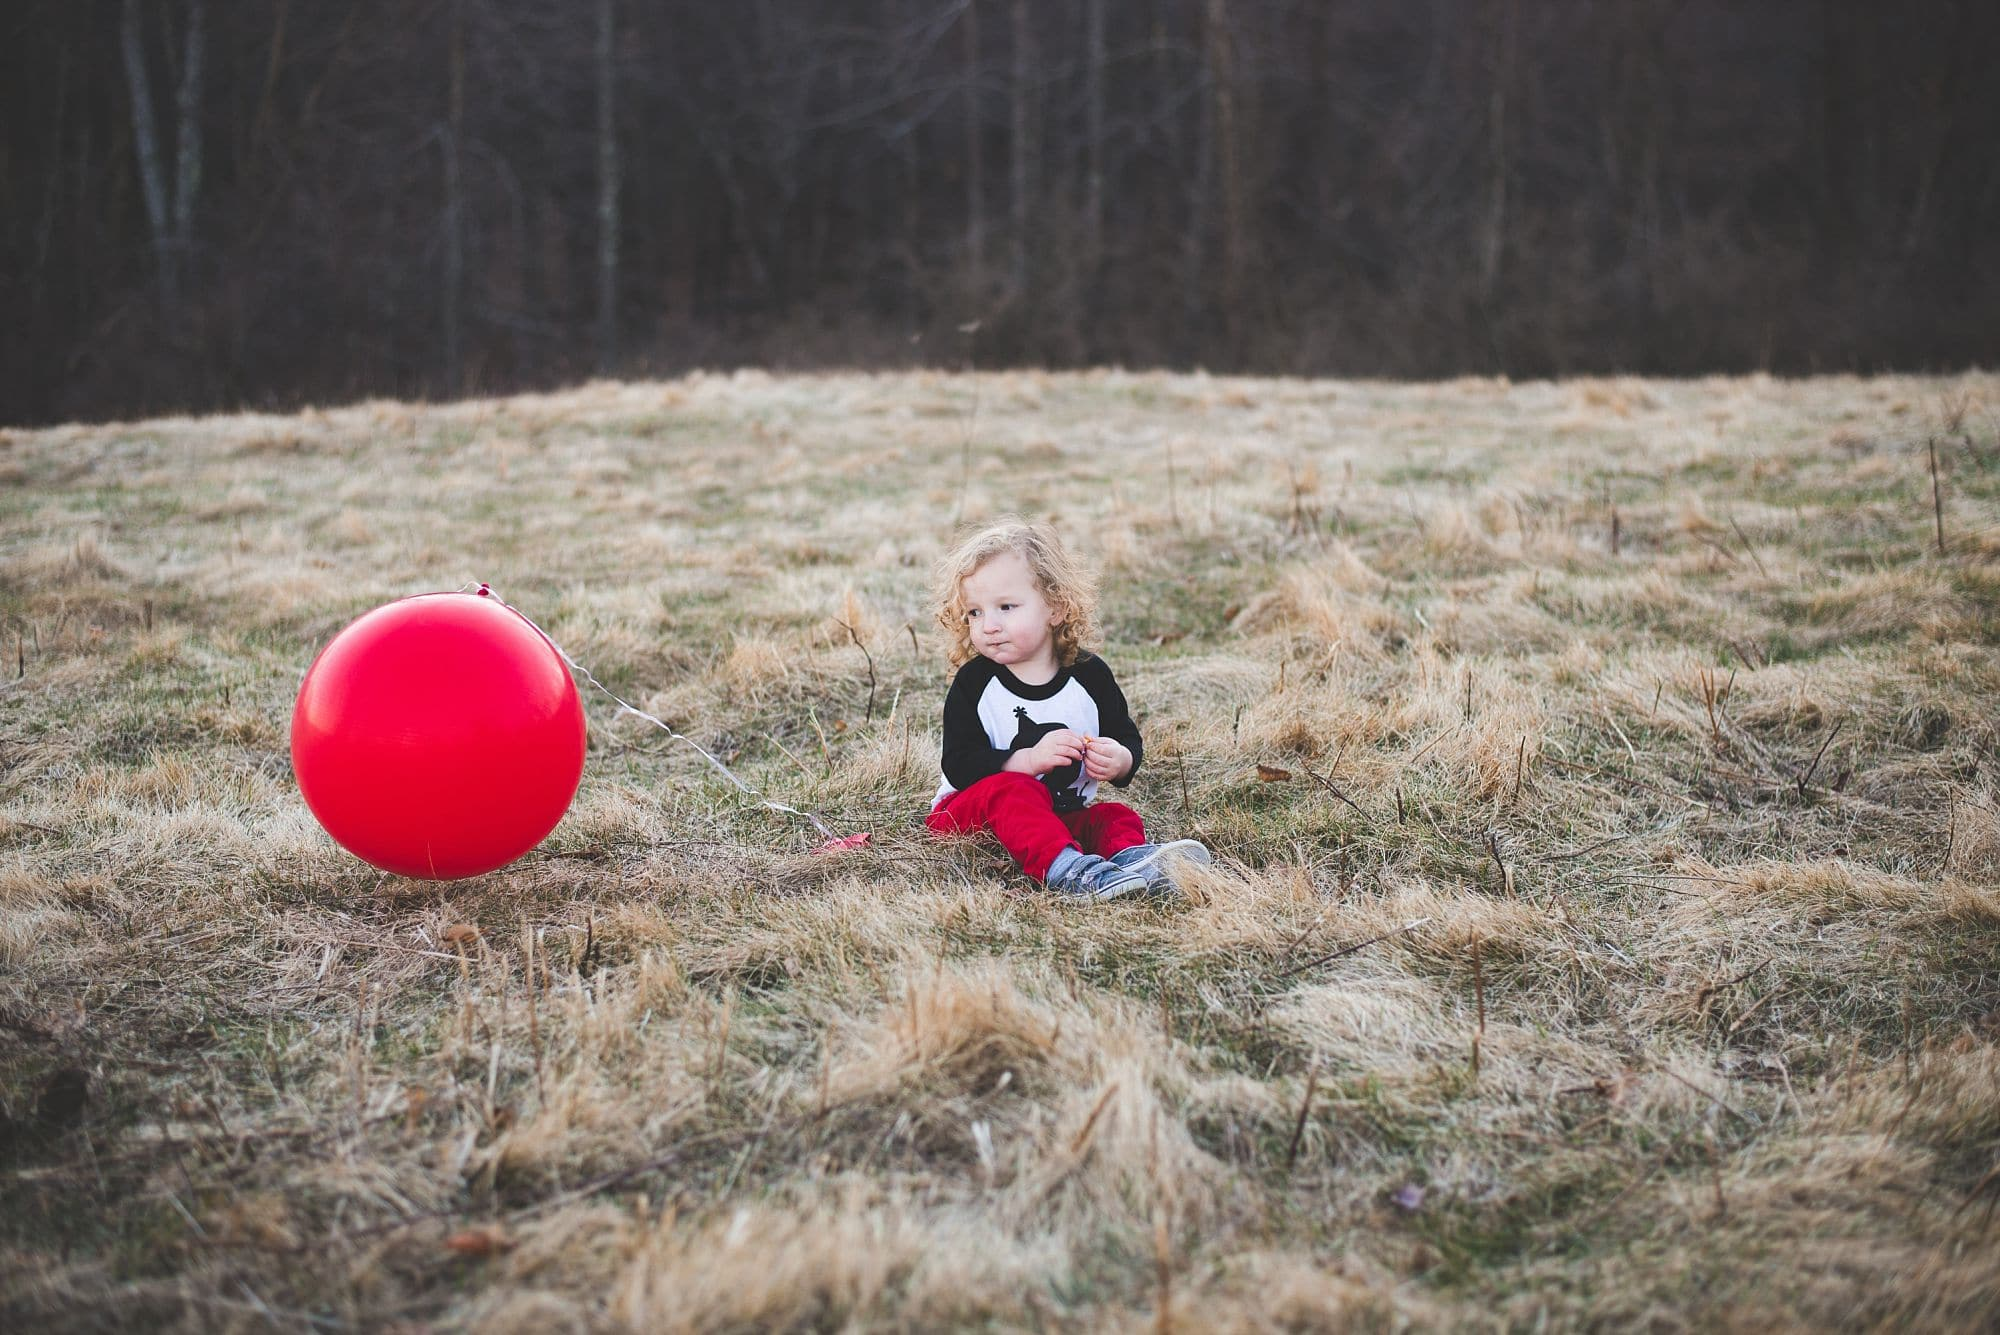 Toddler sits near a large red ball in an open field